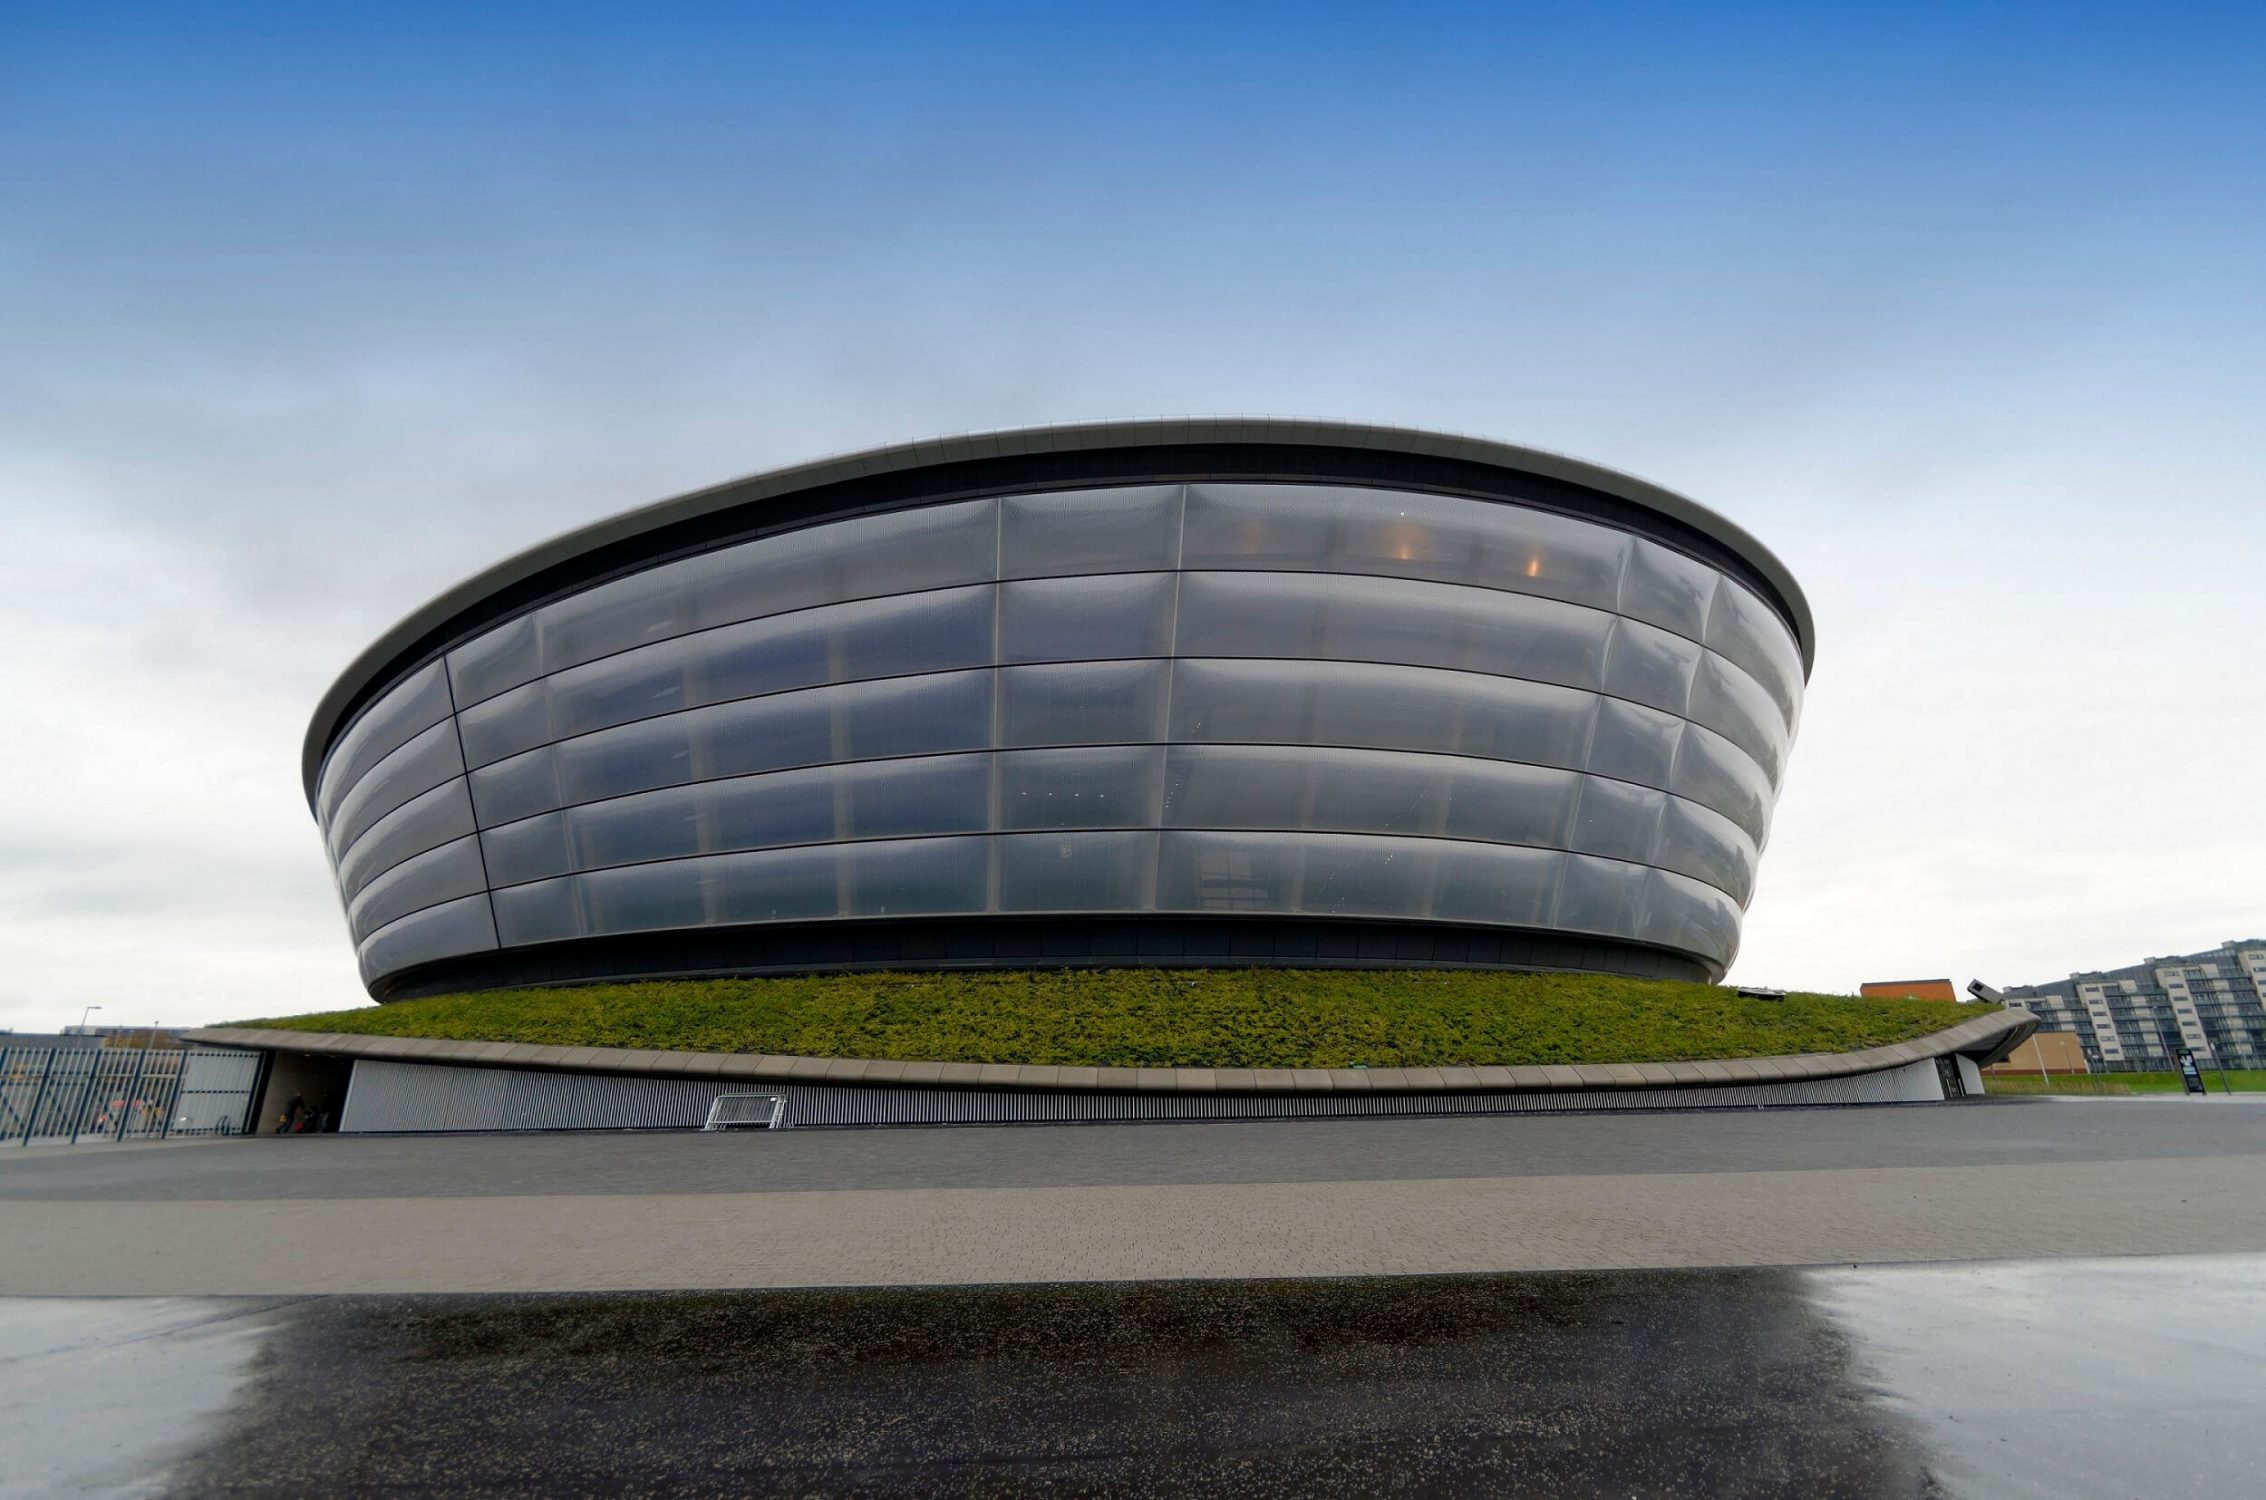 The SSE Hydro 2